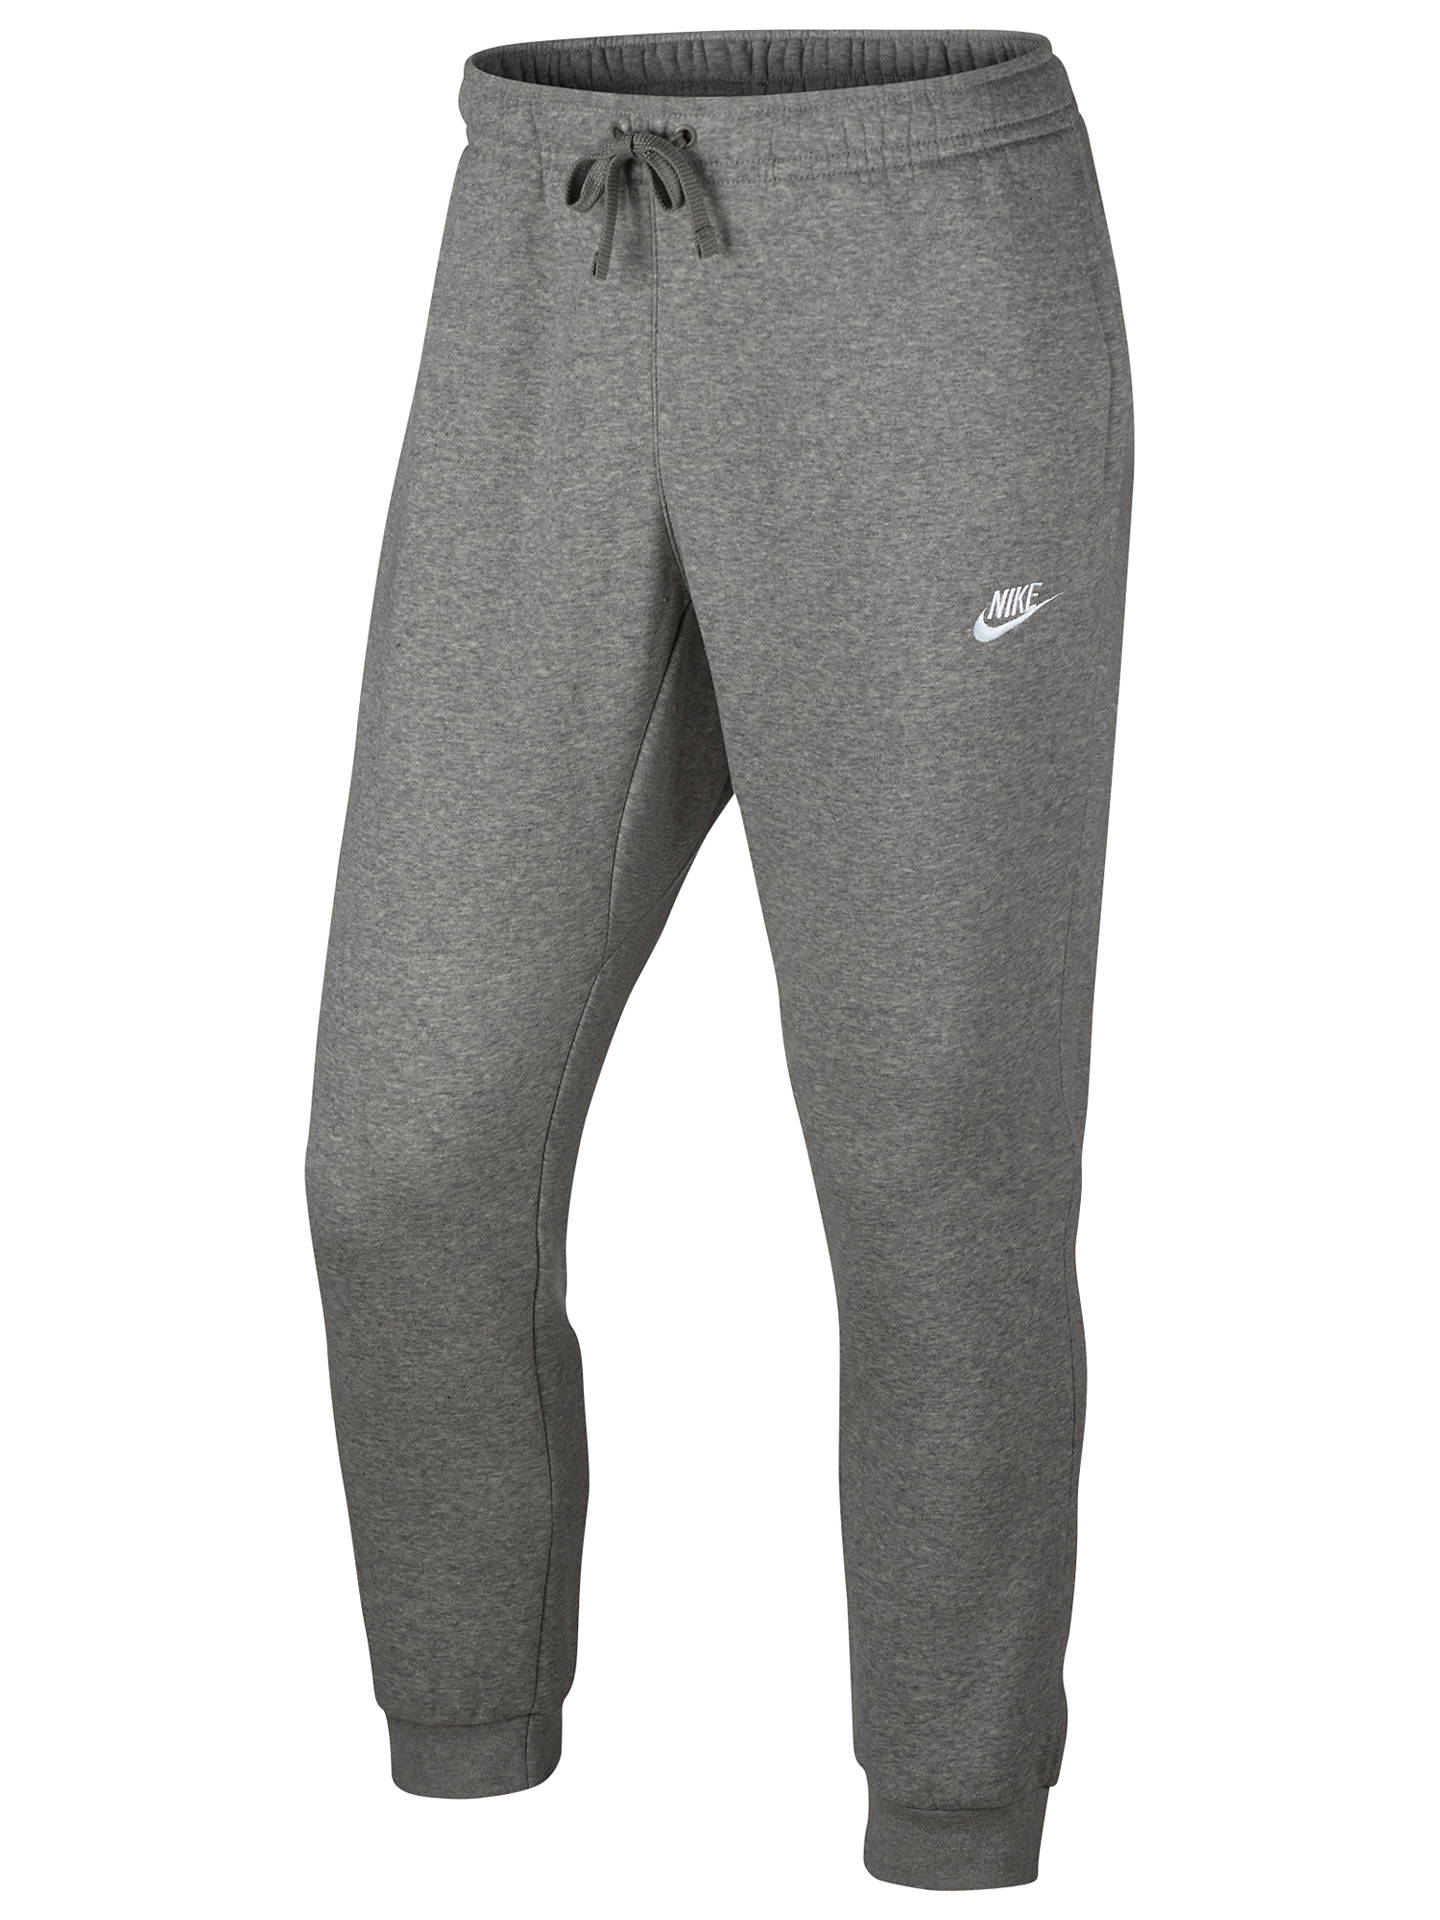 b67ff337487f30 View All Men's Trousers. Previous Image Next Image. Buy Nike Tracksuit  Bottoms, Dark Grey Heather/White, S Online at johnlewis.